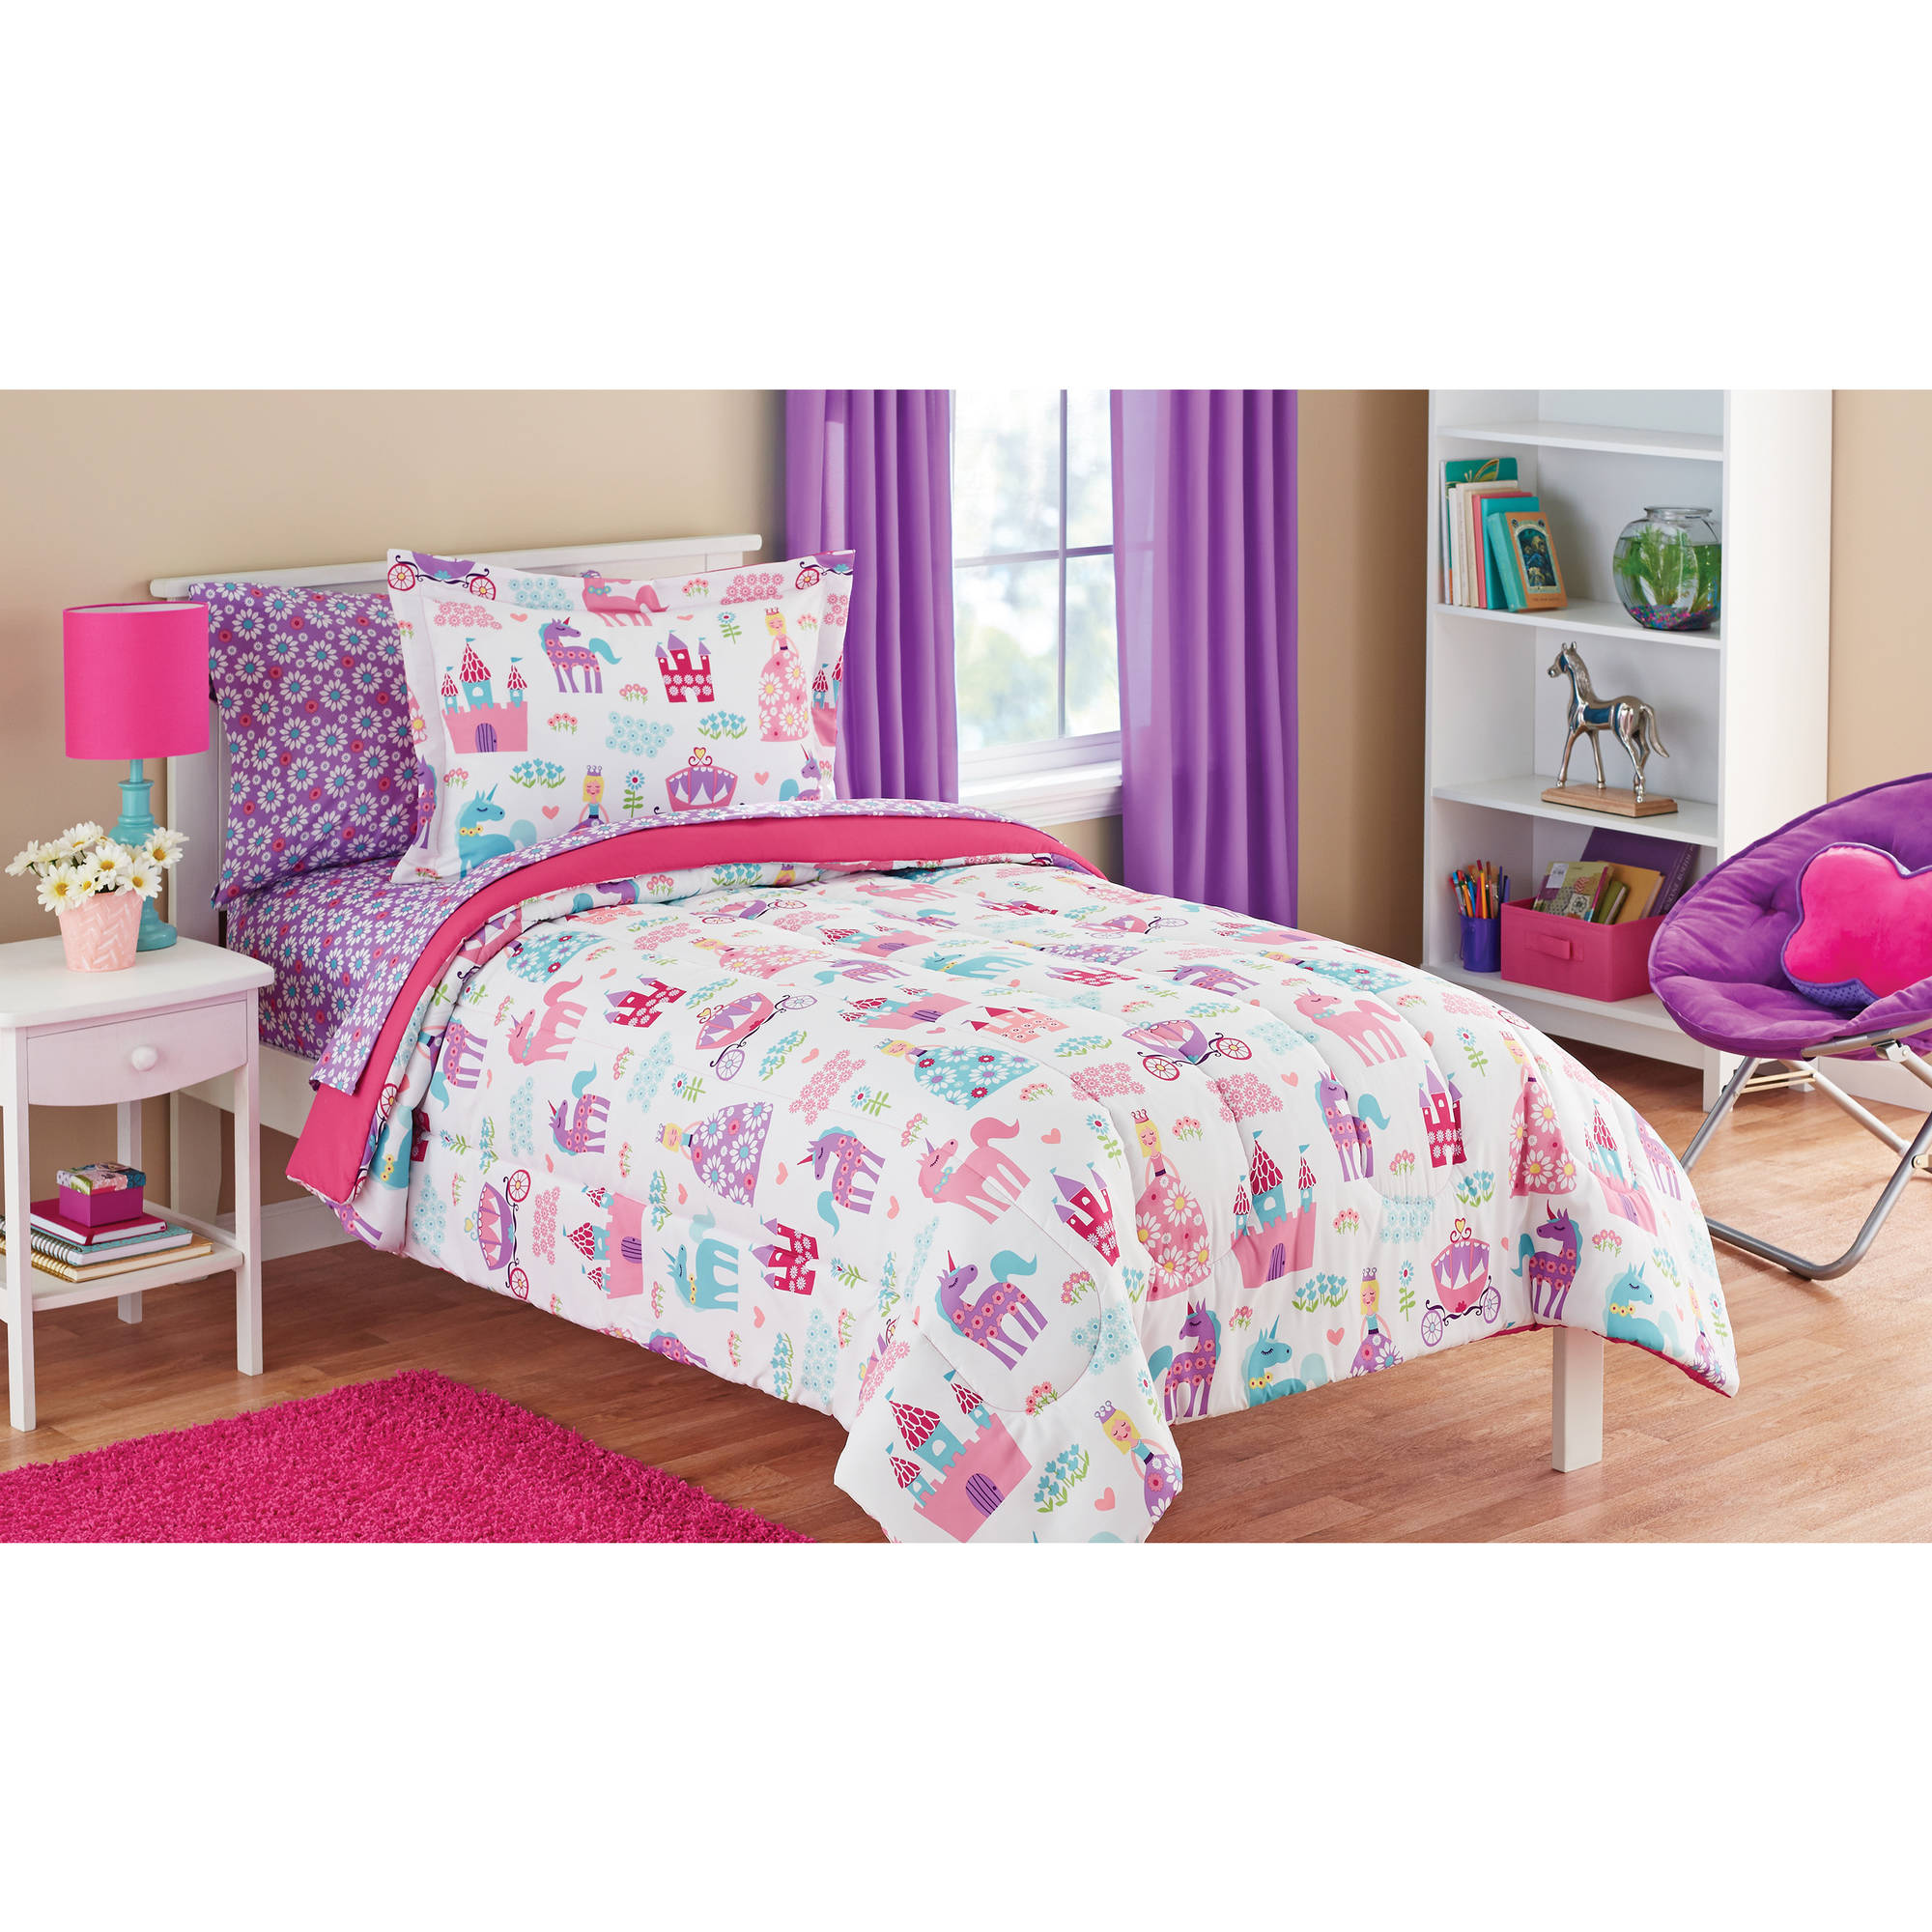 mainstays kids pretty princess bed in a bag bedding set - walmart